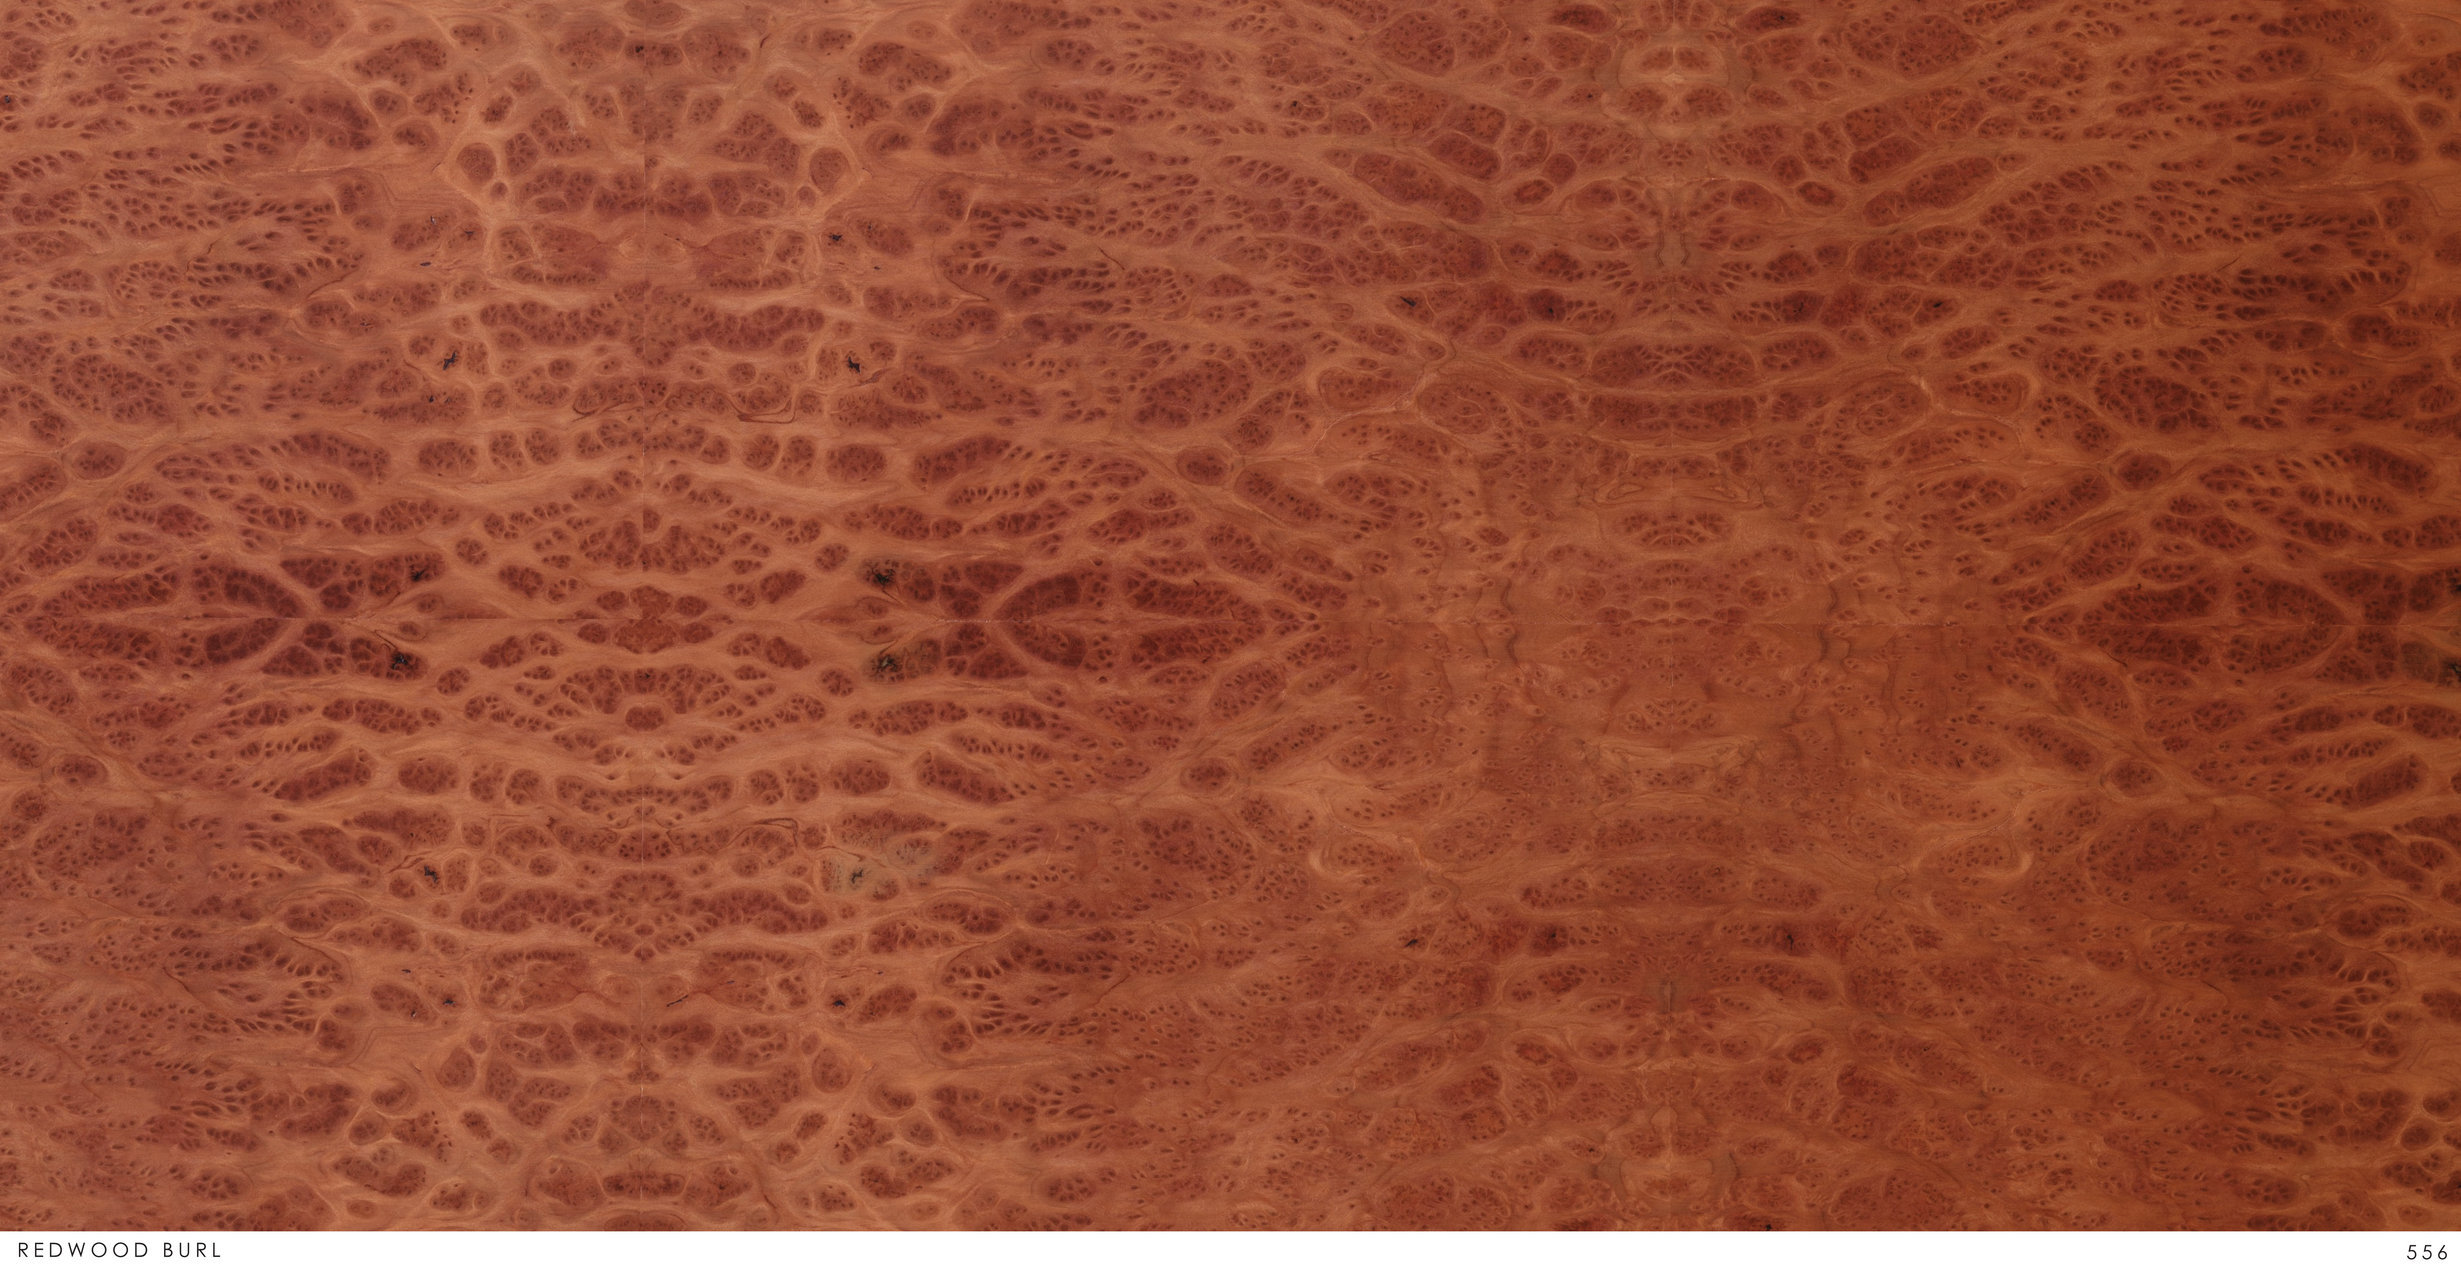 REDWOOD BURL 556.jpg